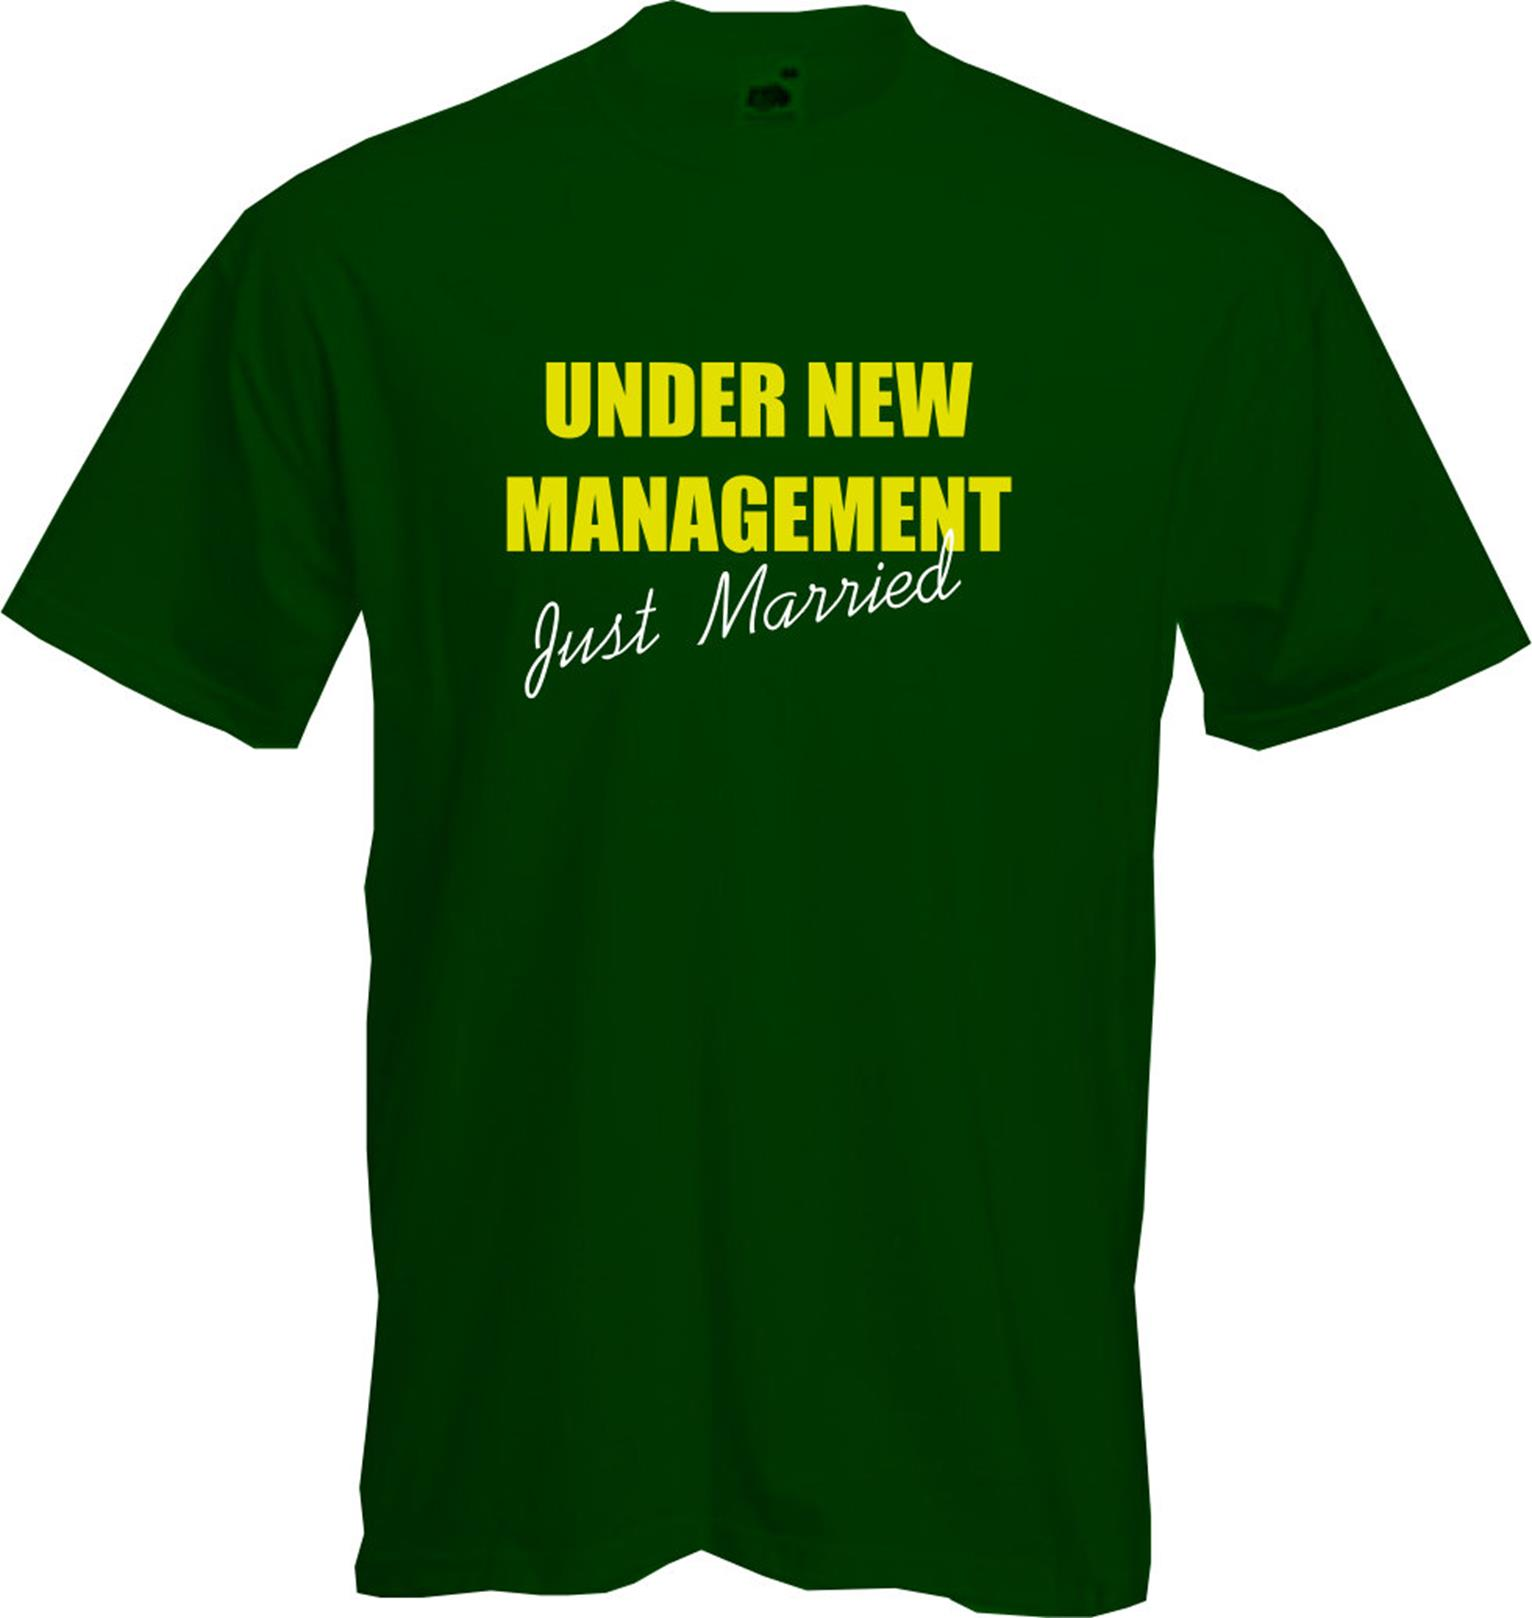 Honeymoon Clothes Gifts: UNDER NEW MANAGEMENT (Just Married)